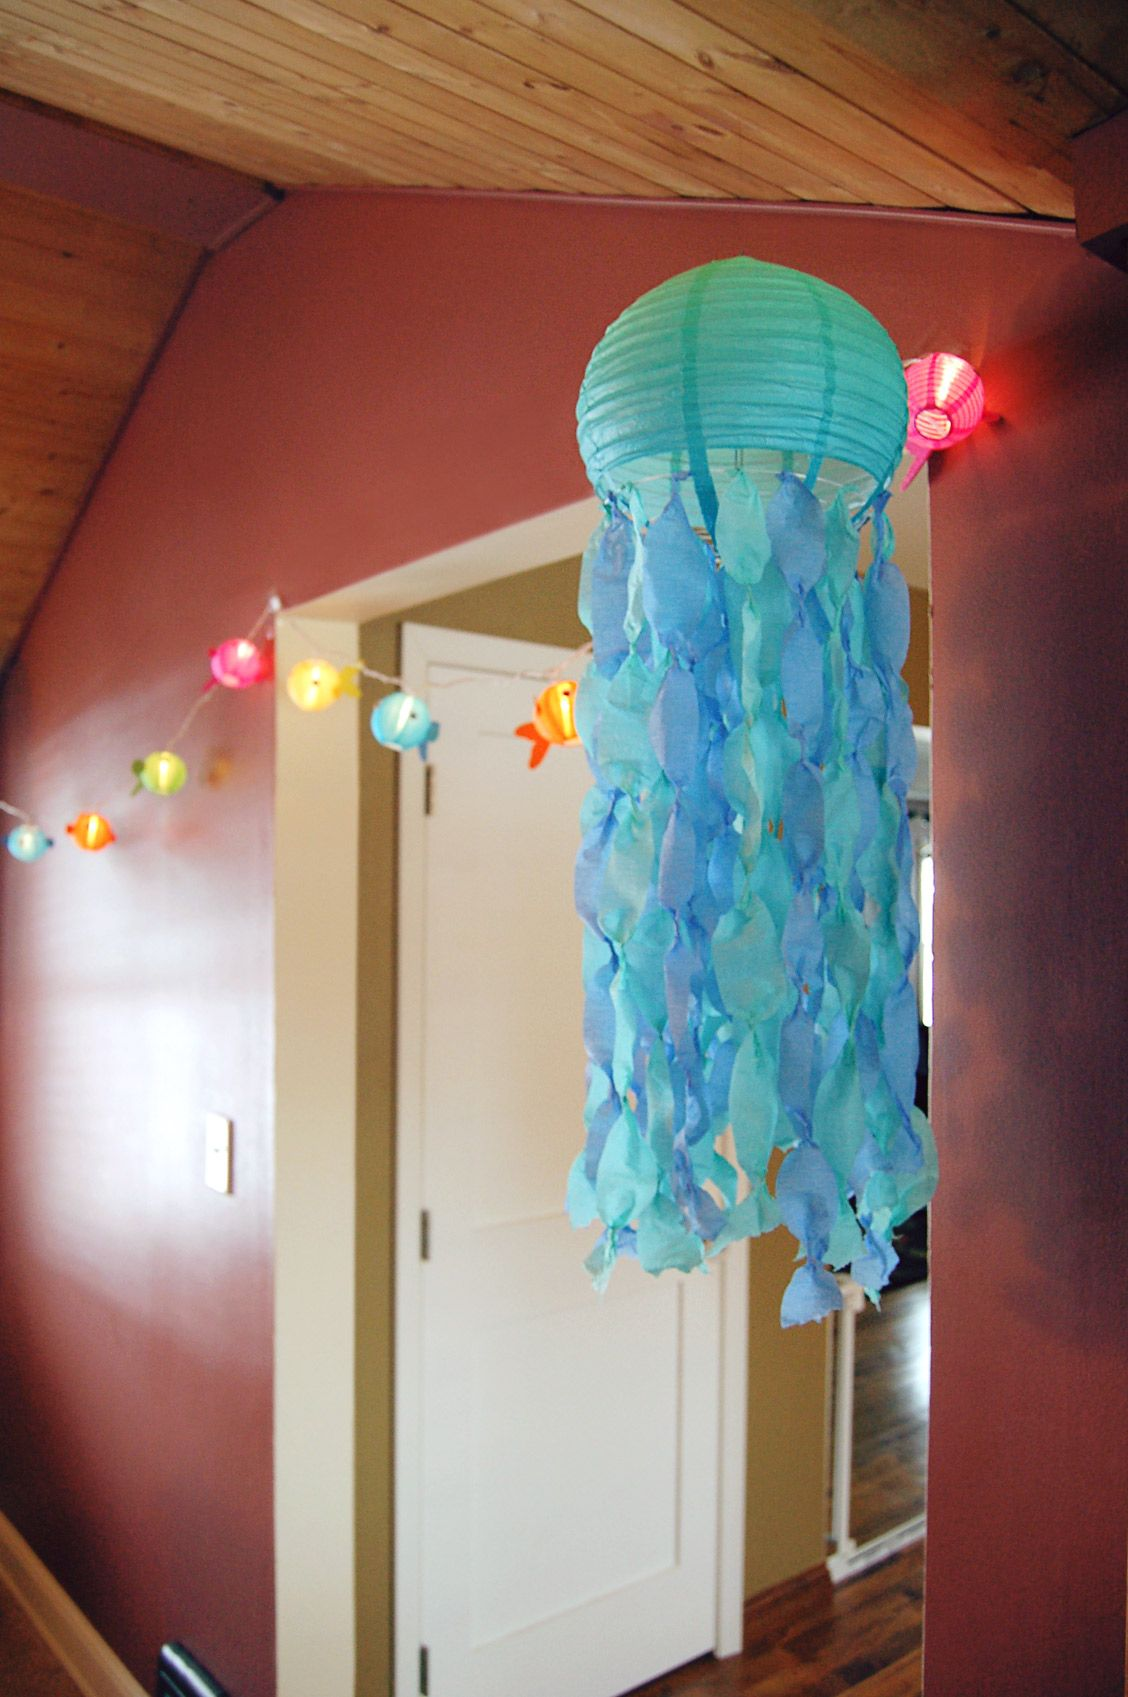 Paper Lantern Jellyfish New Jellyfish Lanterns #birthdayexpre…  Parties Mermaid  Under The 2018